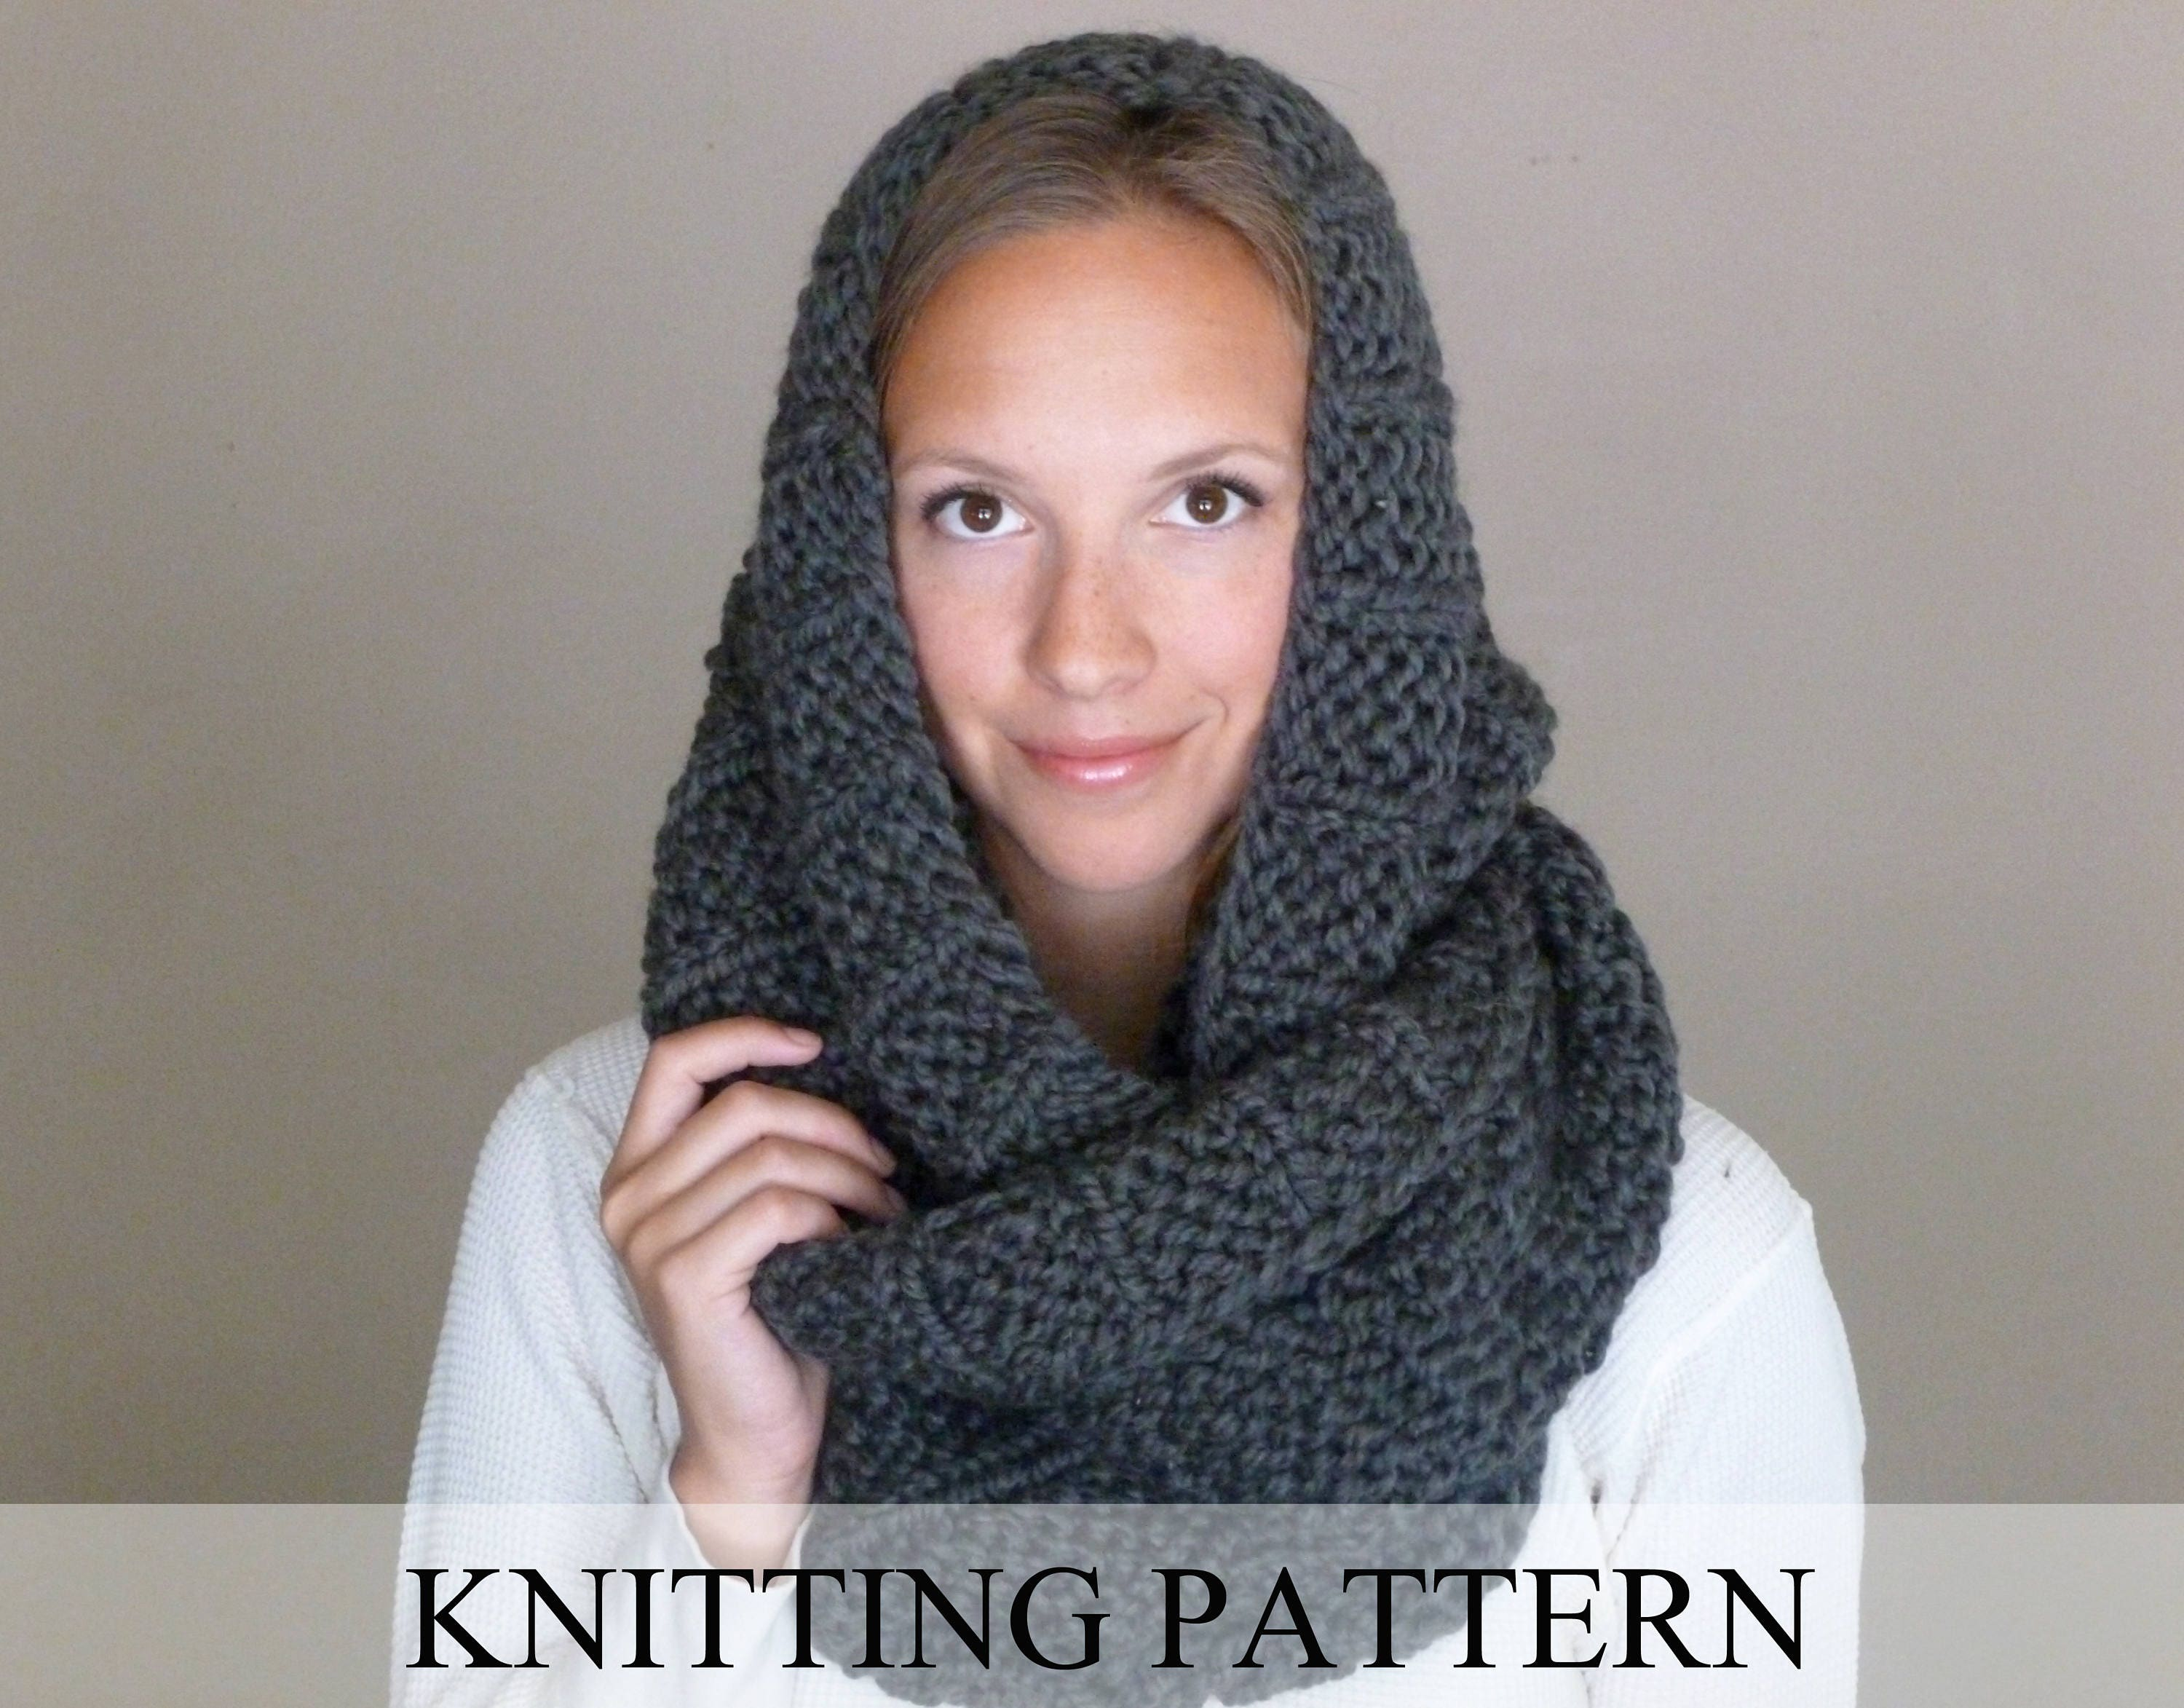 KNITTING PATTERN The Celebrity Scarf, Knit Infinity Scarf Pattern ...